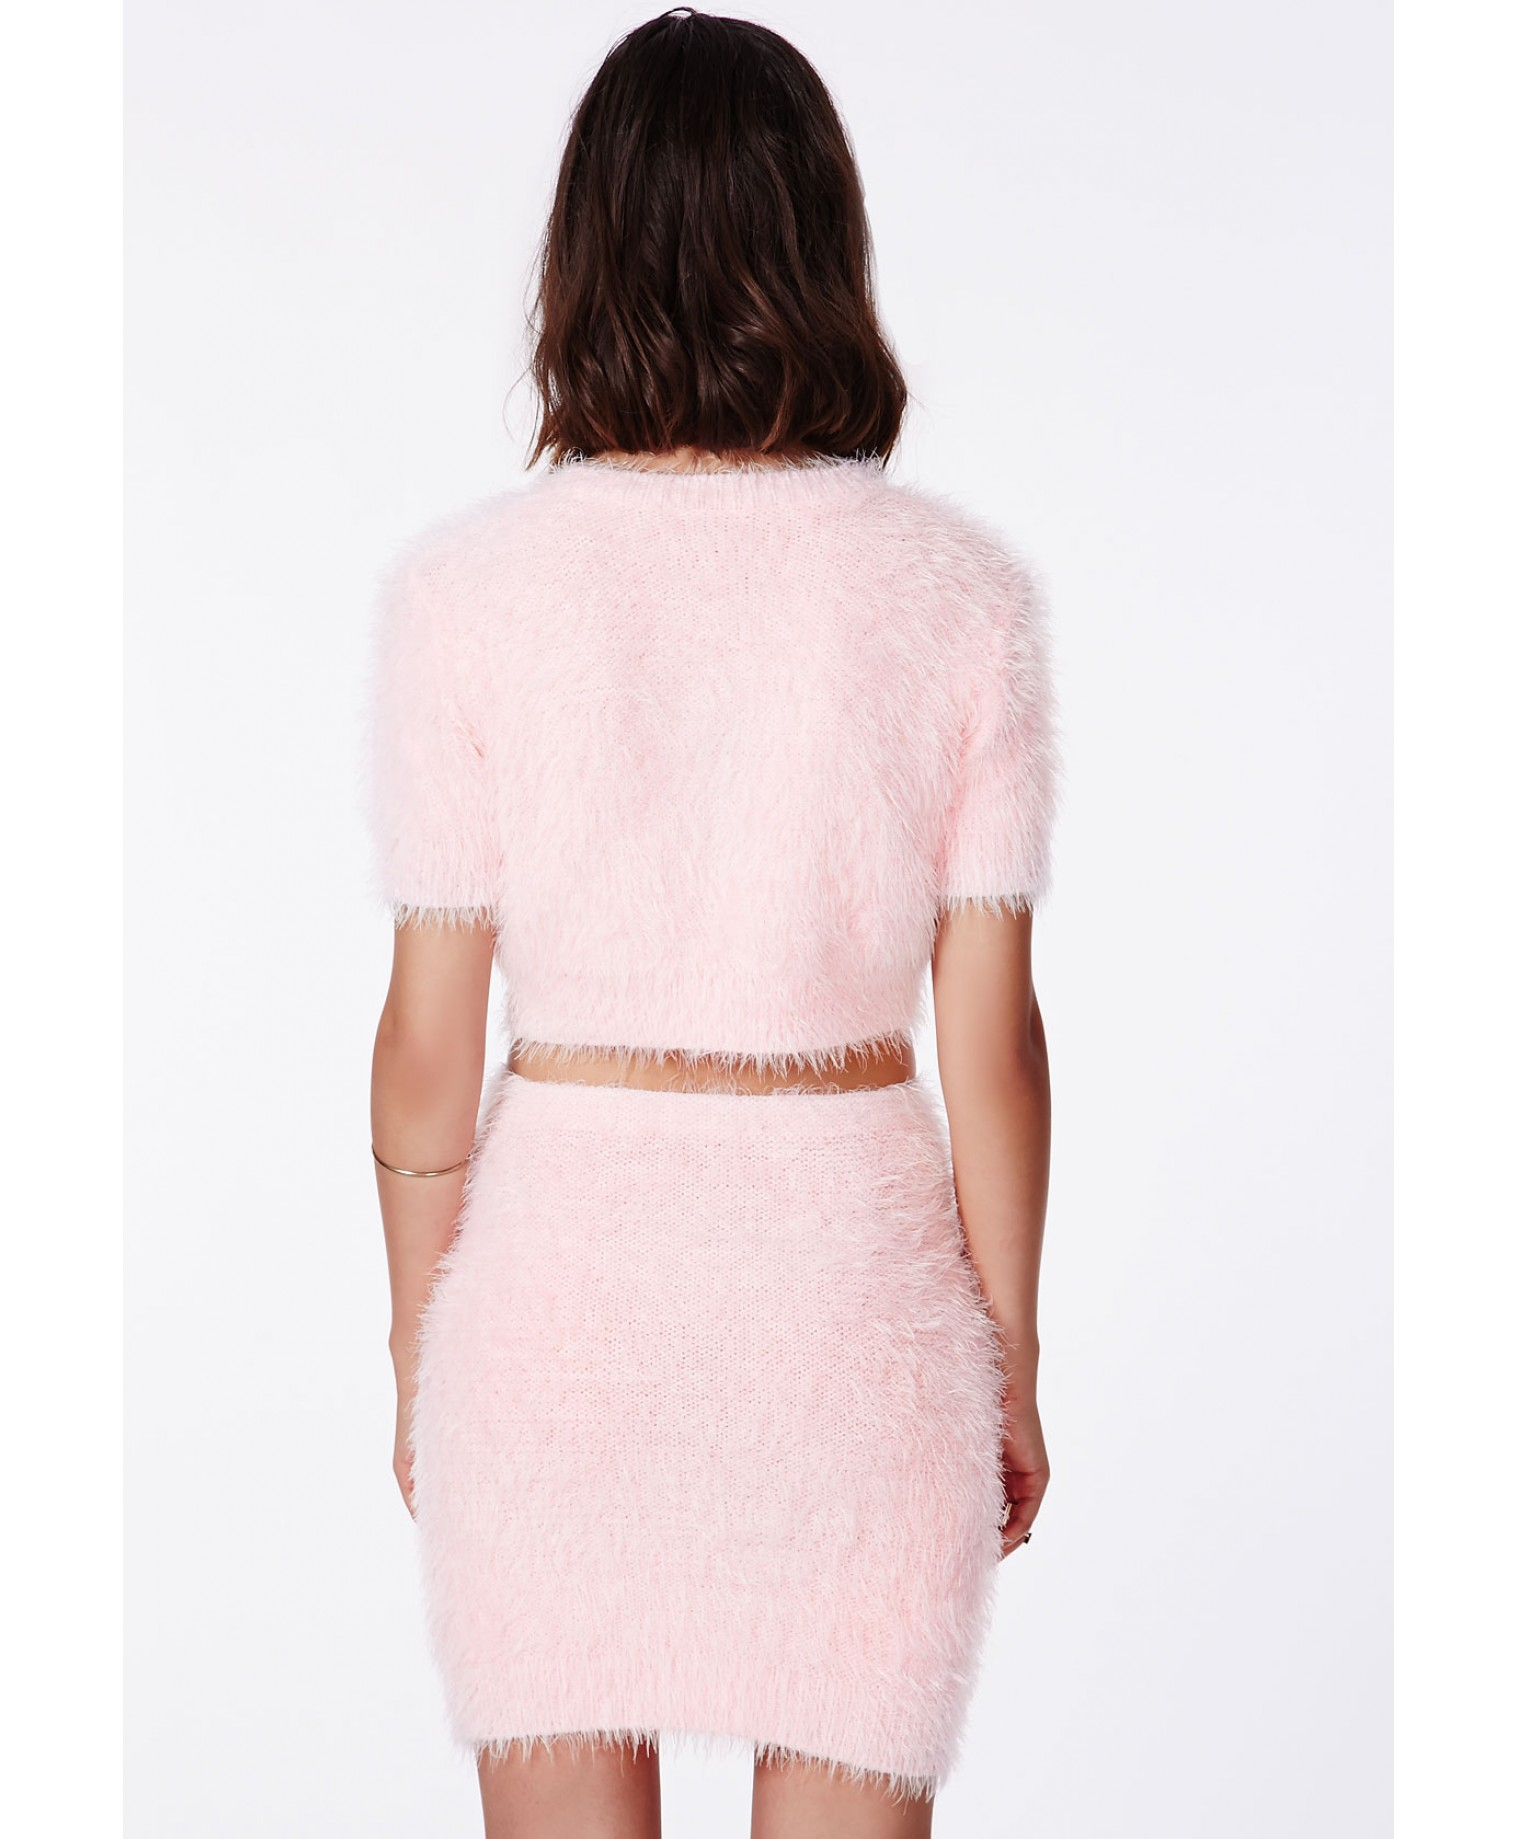 Alycia Fluffy Knit Cropped Jumper Baby Pink